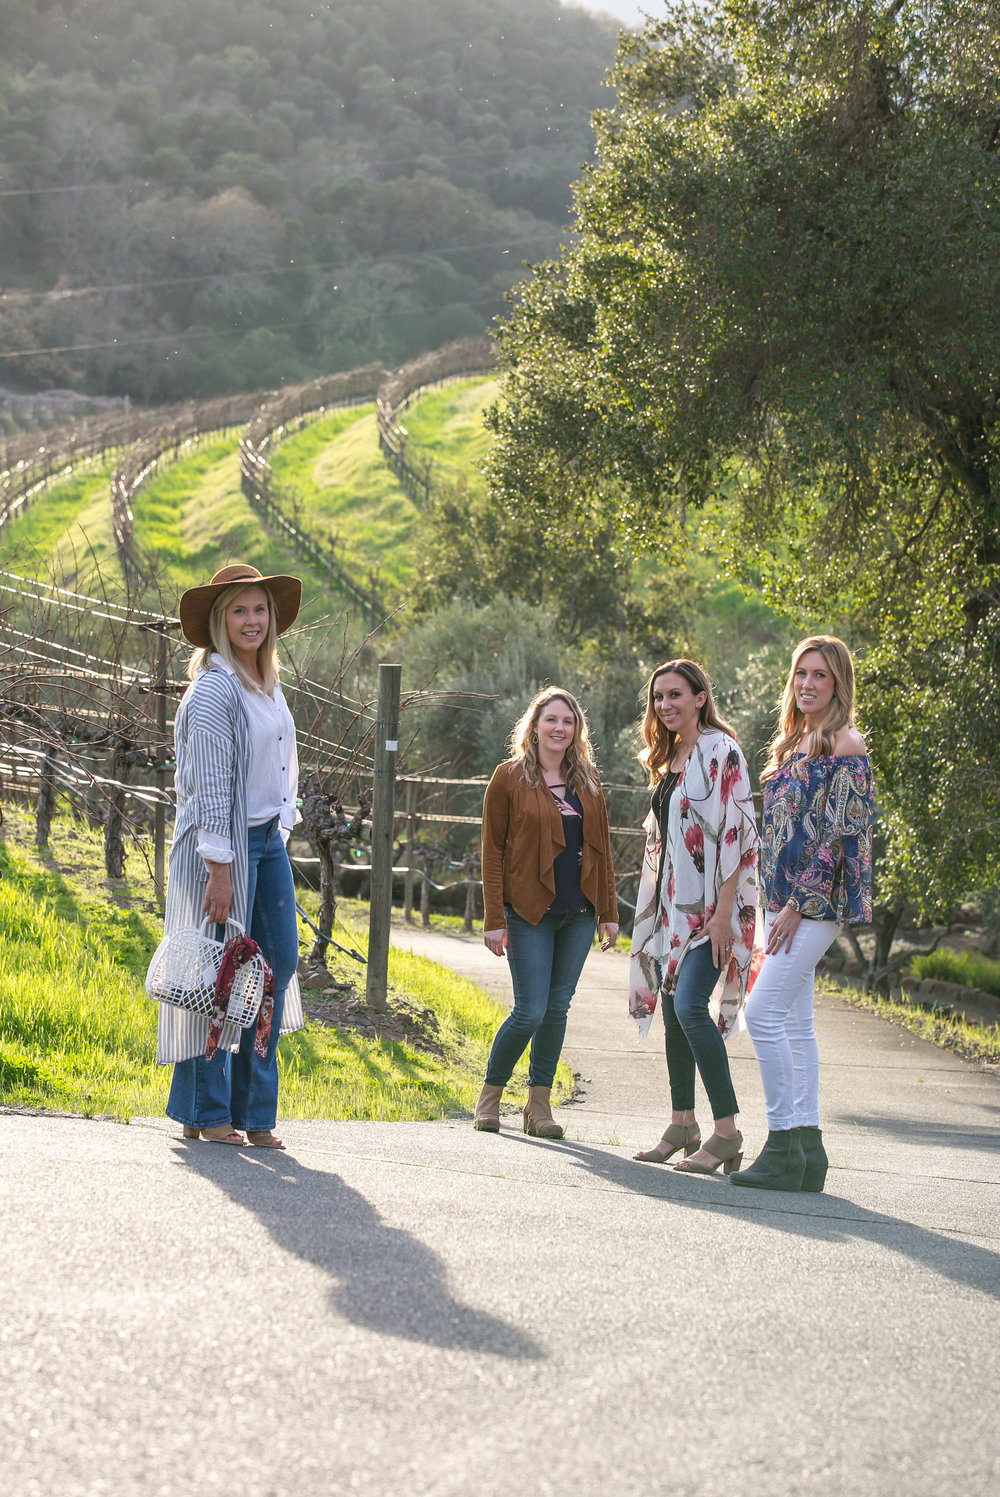 Vine_Cliff-napa-girls-trip-wine-tasting.jpg